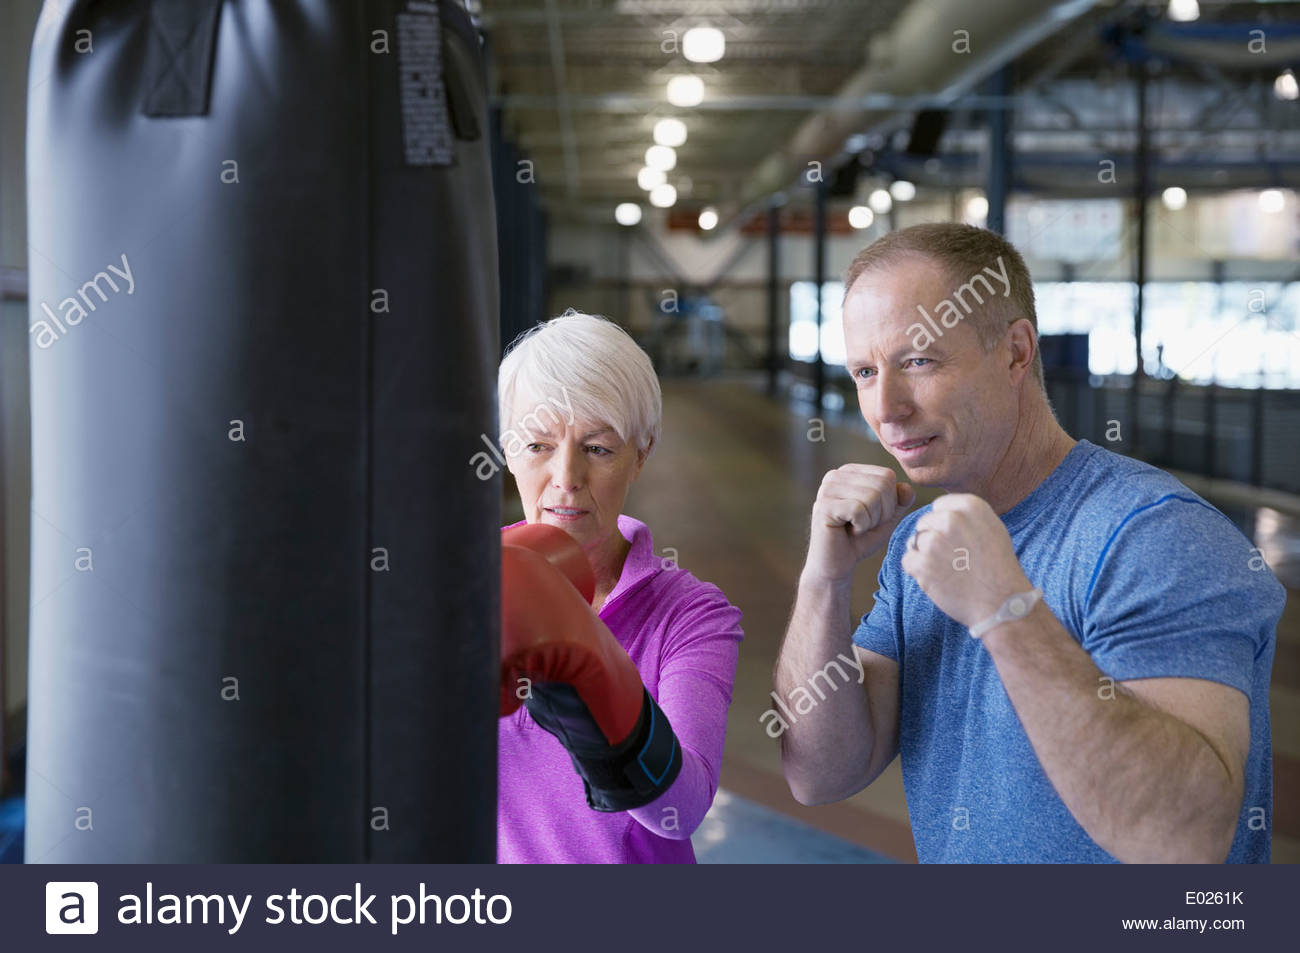 Woman boxing with personal trainer at gym - Stock Image